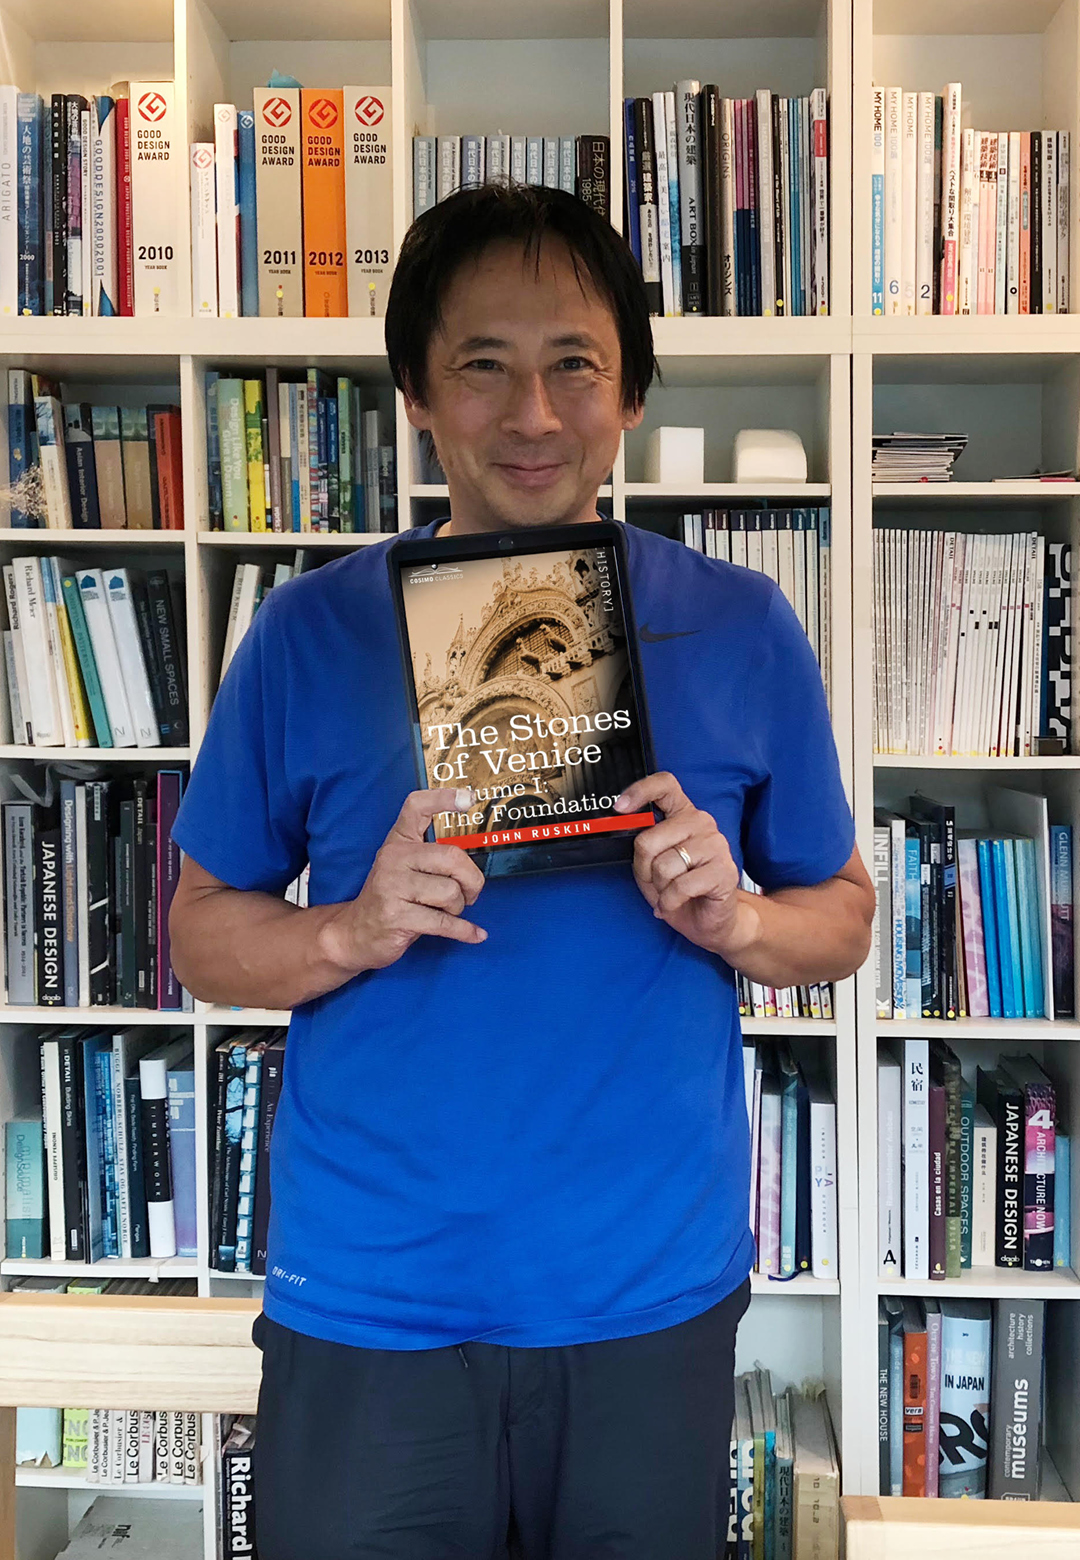 Architect Takaharu Tezuka with the book The Stones of Venice |The Stones of Venice | John Ruskin | J. G. Links | Takaharu Tezuka | STIR